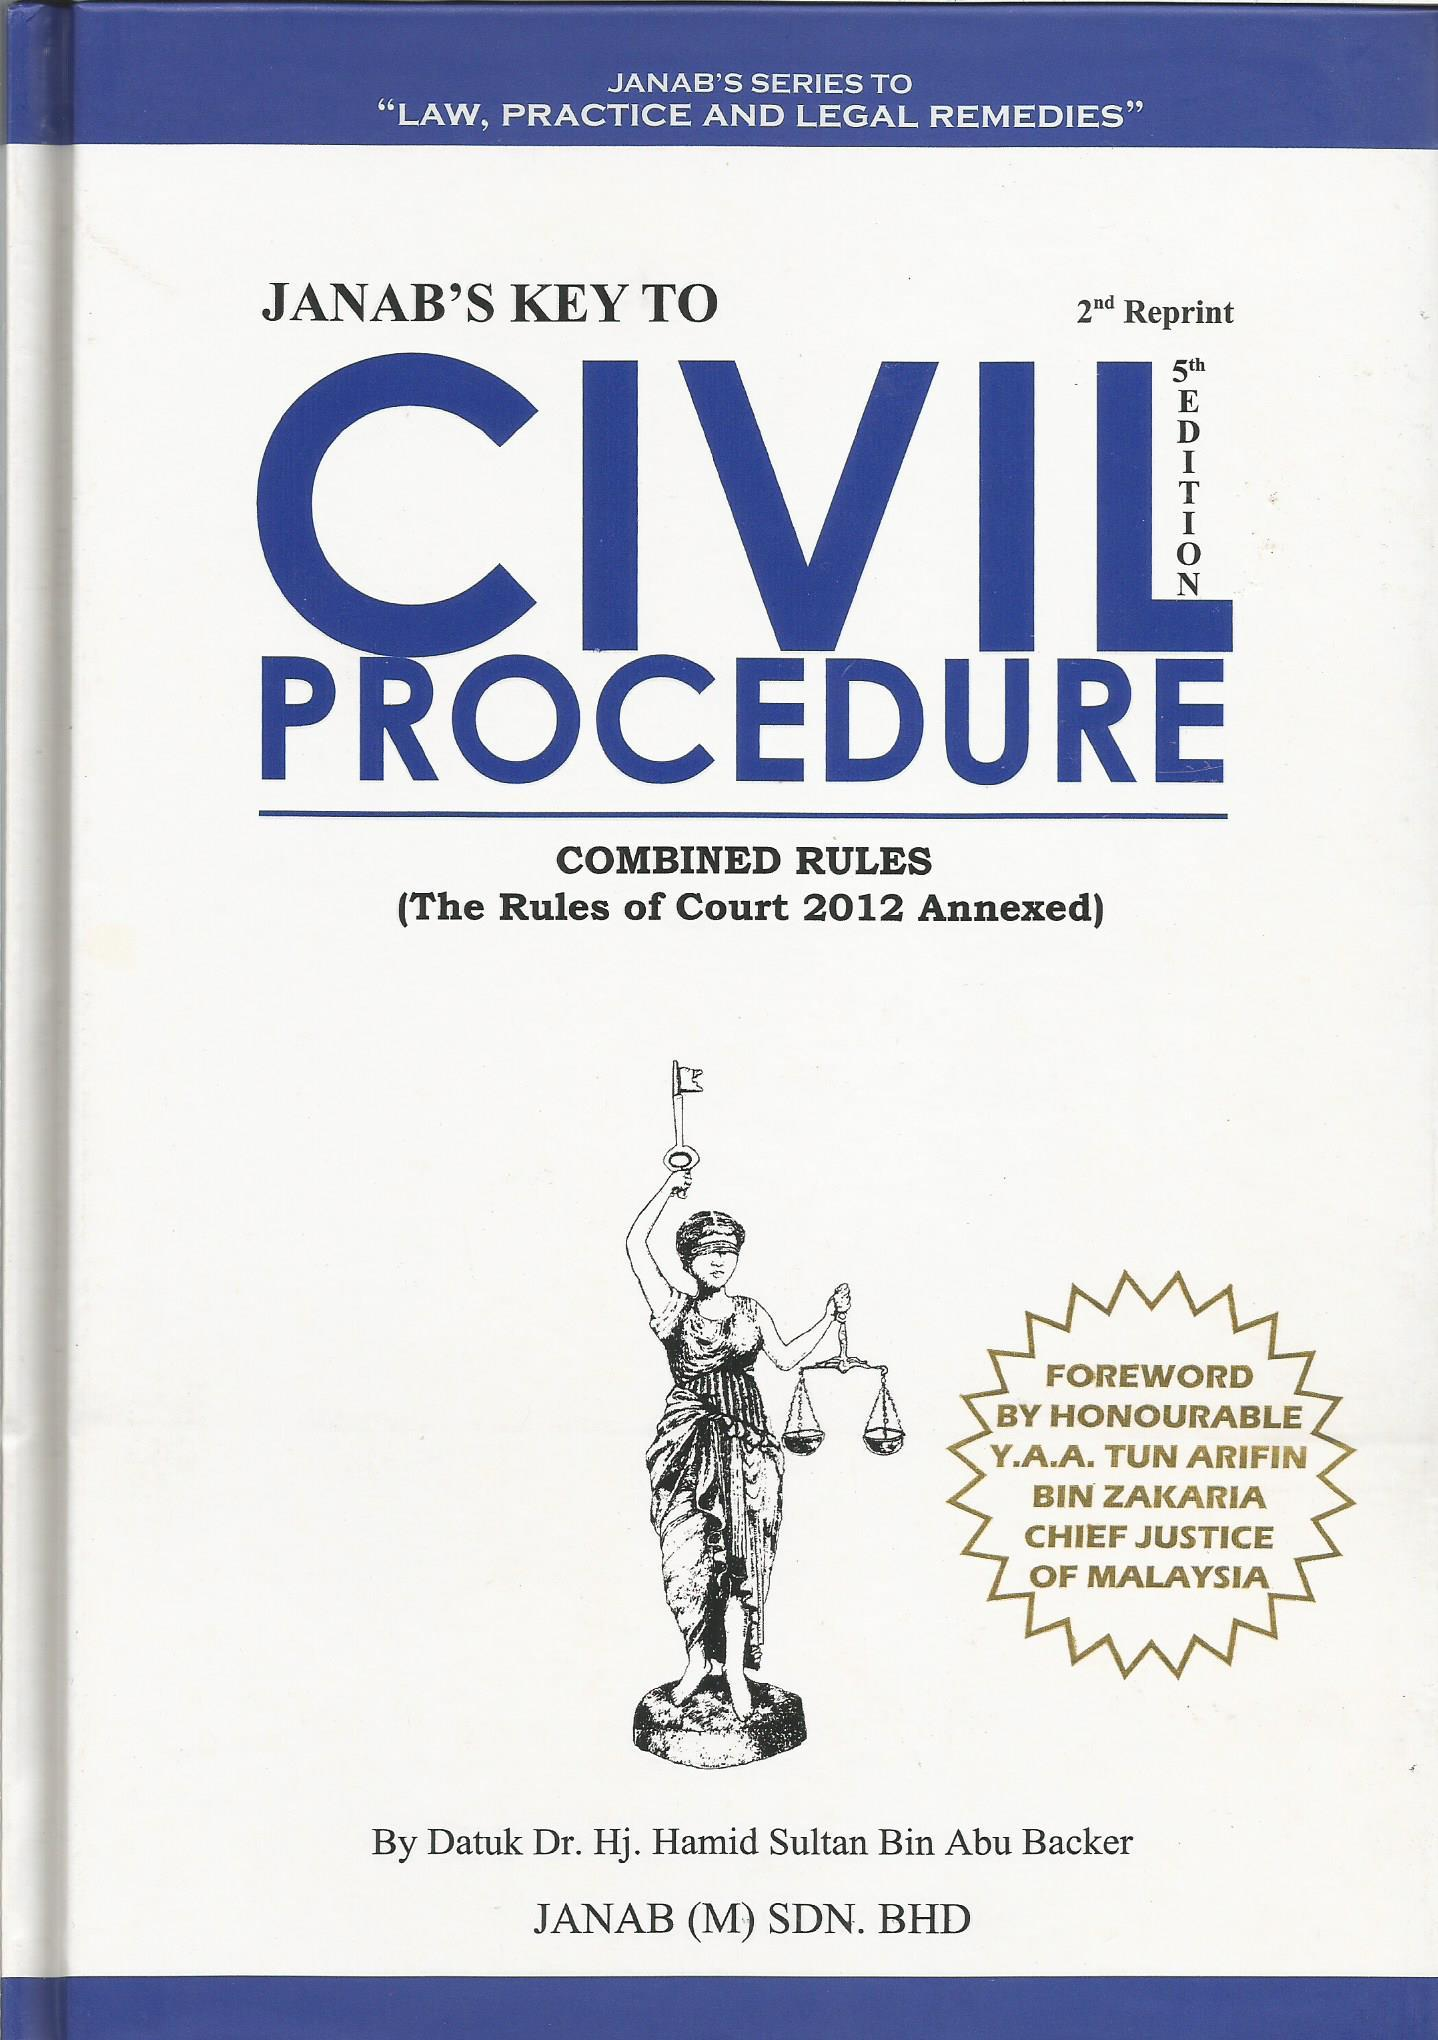 janab civil procedure rm300 1.80001.jpg